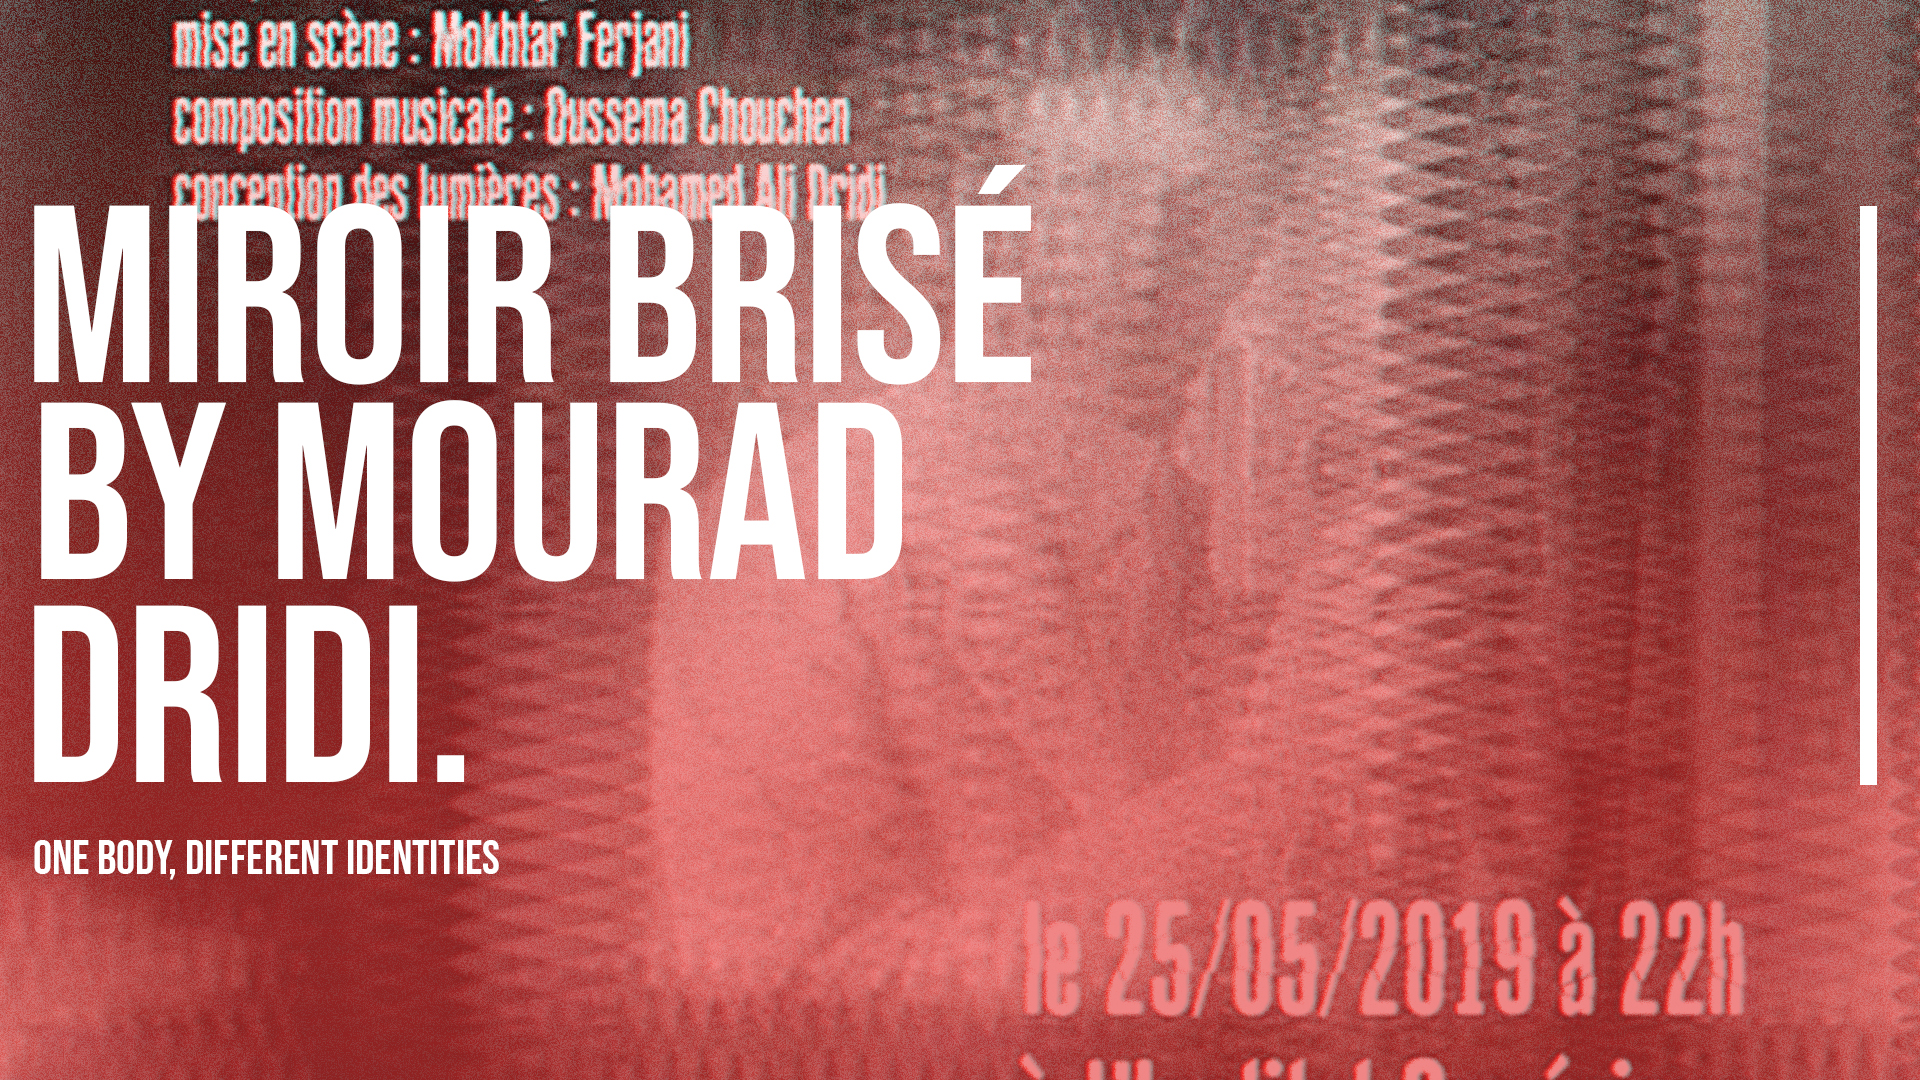 Miroir Brisé by Mourad Dridi: One Body, Different Identities